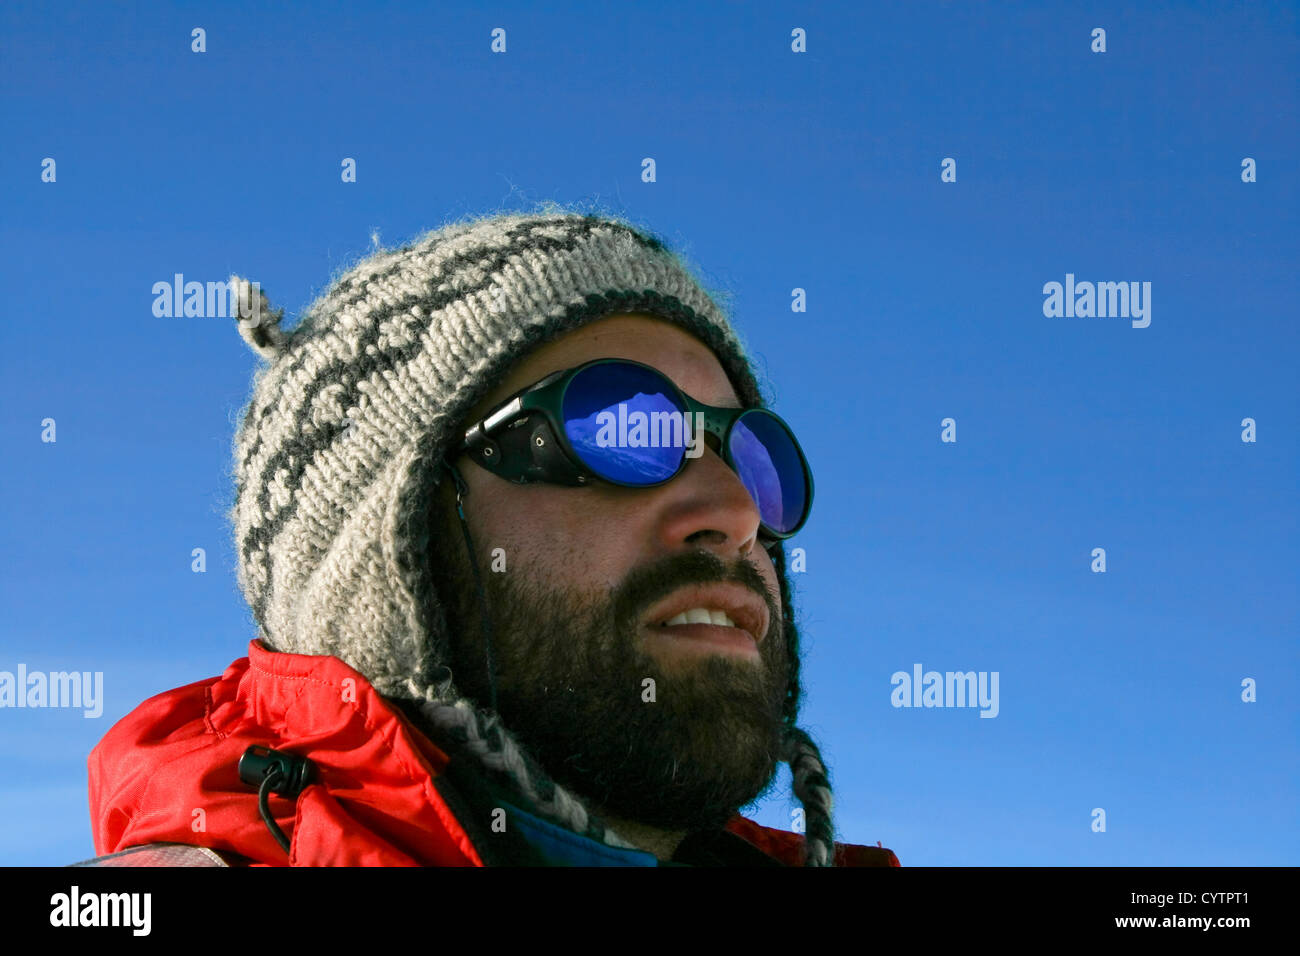 Reflection in the sungalsses of an adventurer on Antarctica - Stock Image